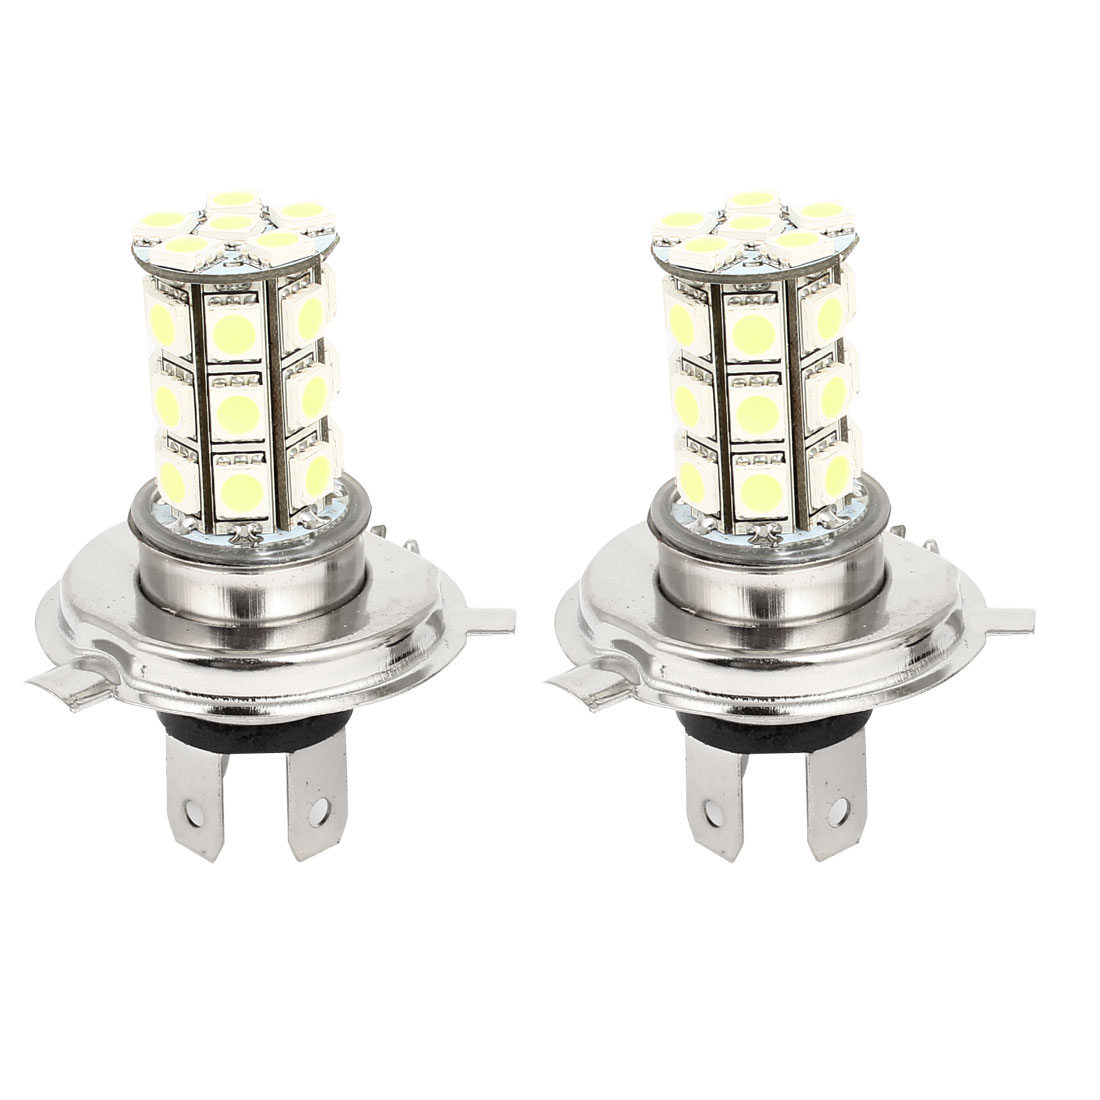 2 Pcs H4 12V 5050 SMD 27 LED Car Head Light Lamp Bulb DC 12V White